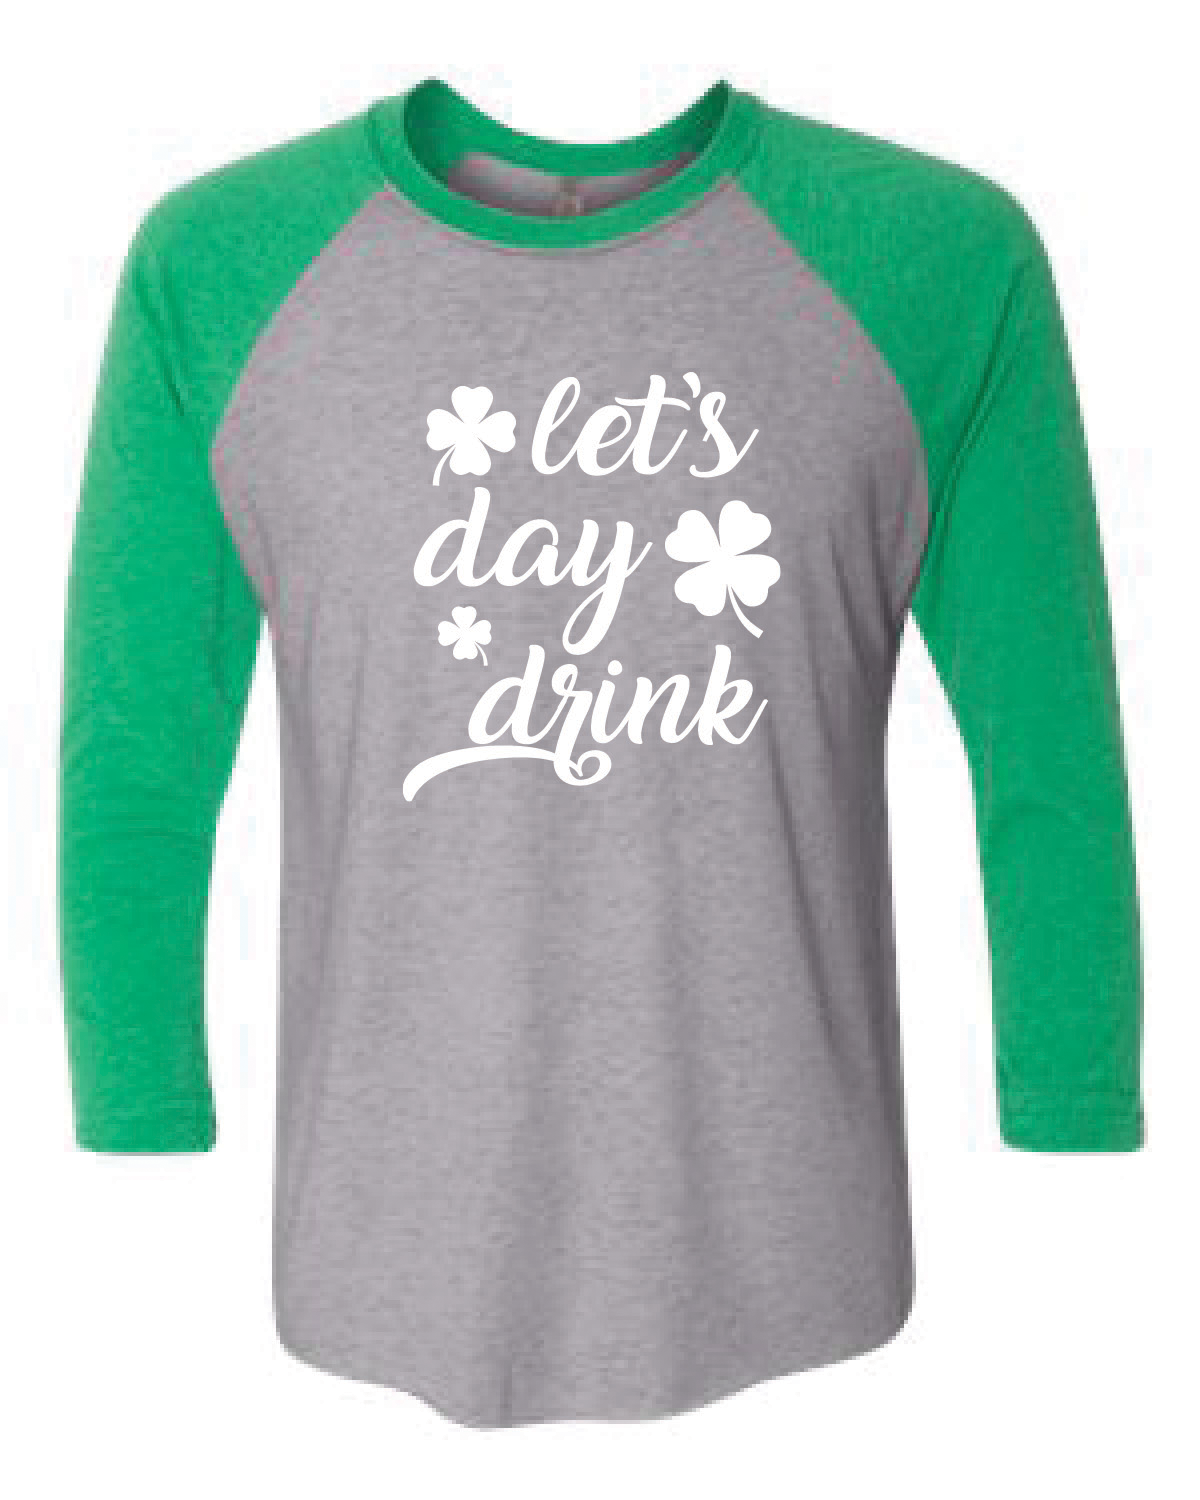 Baseball T-Shirt (LET'S DAY DRINK)